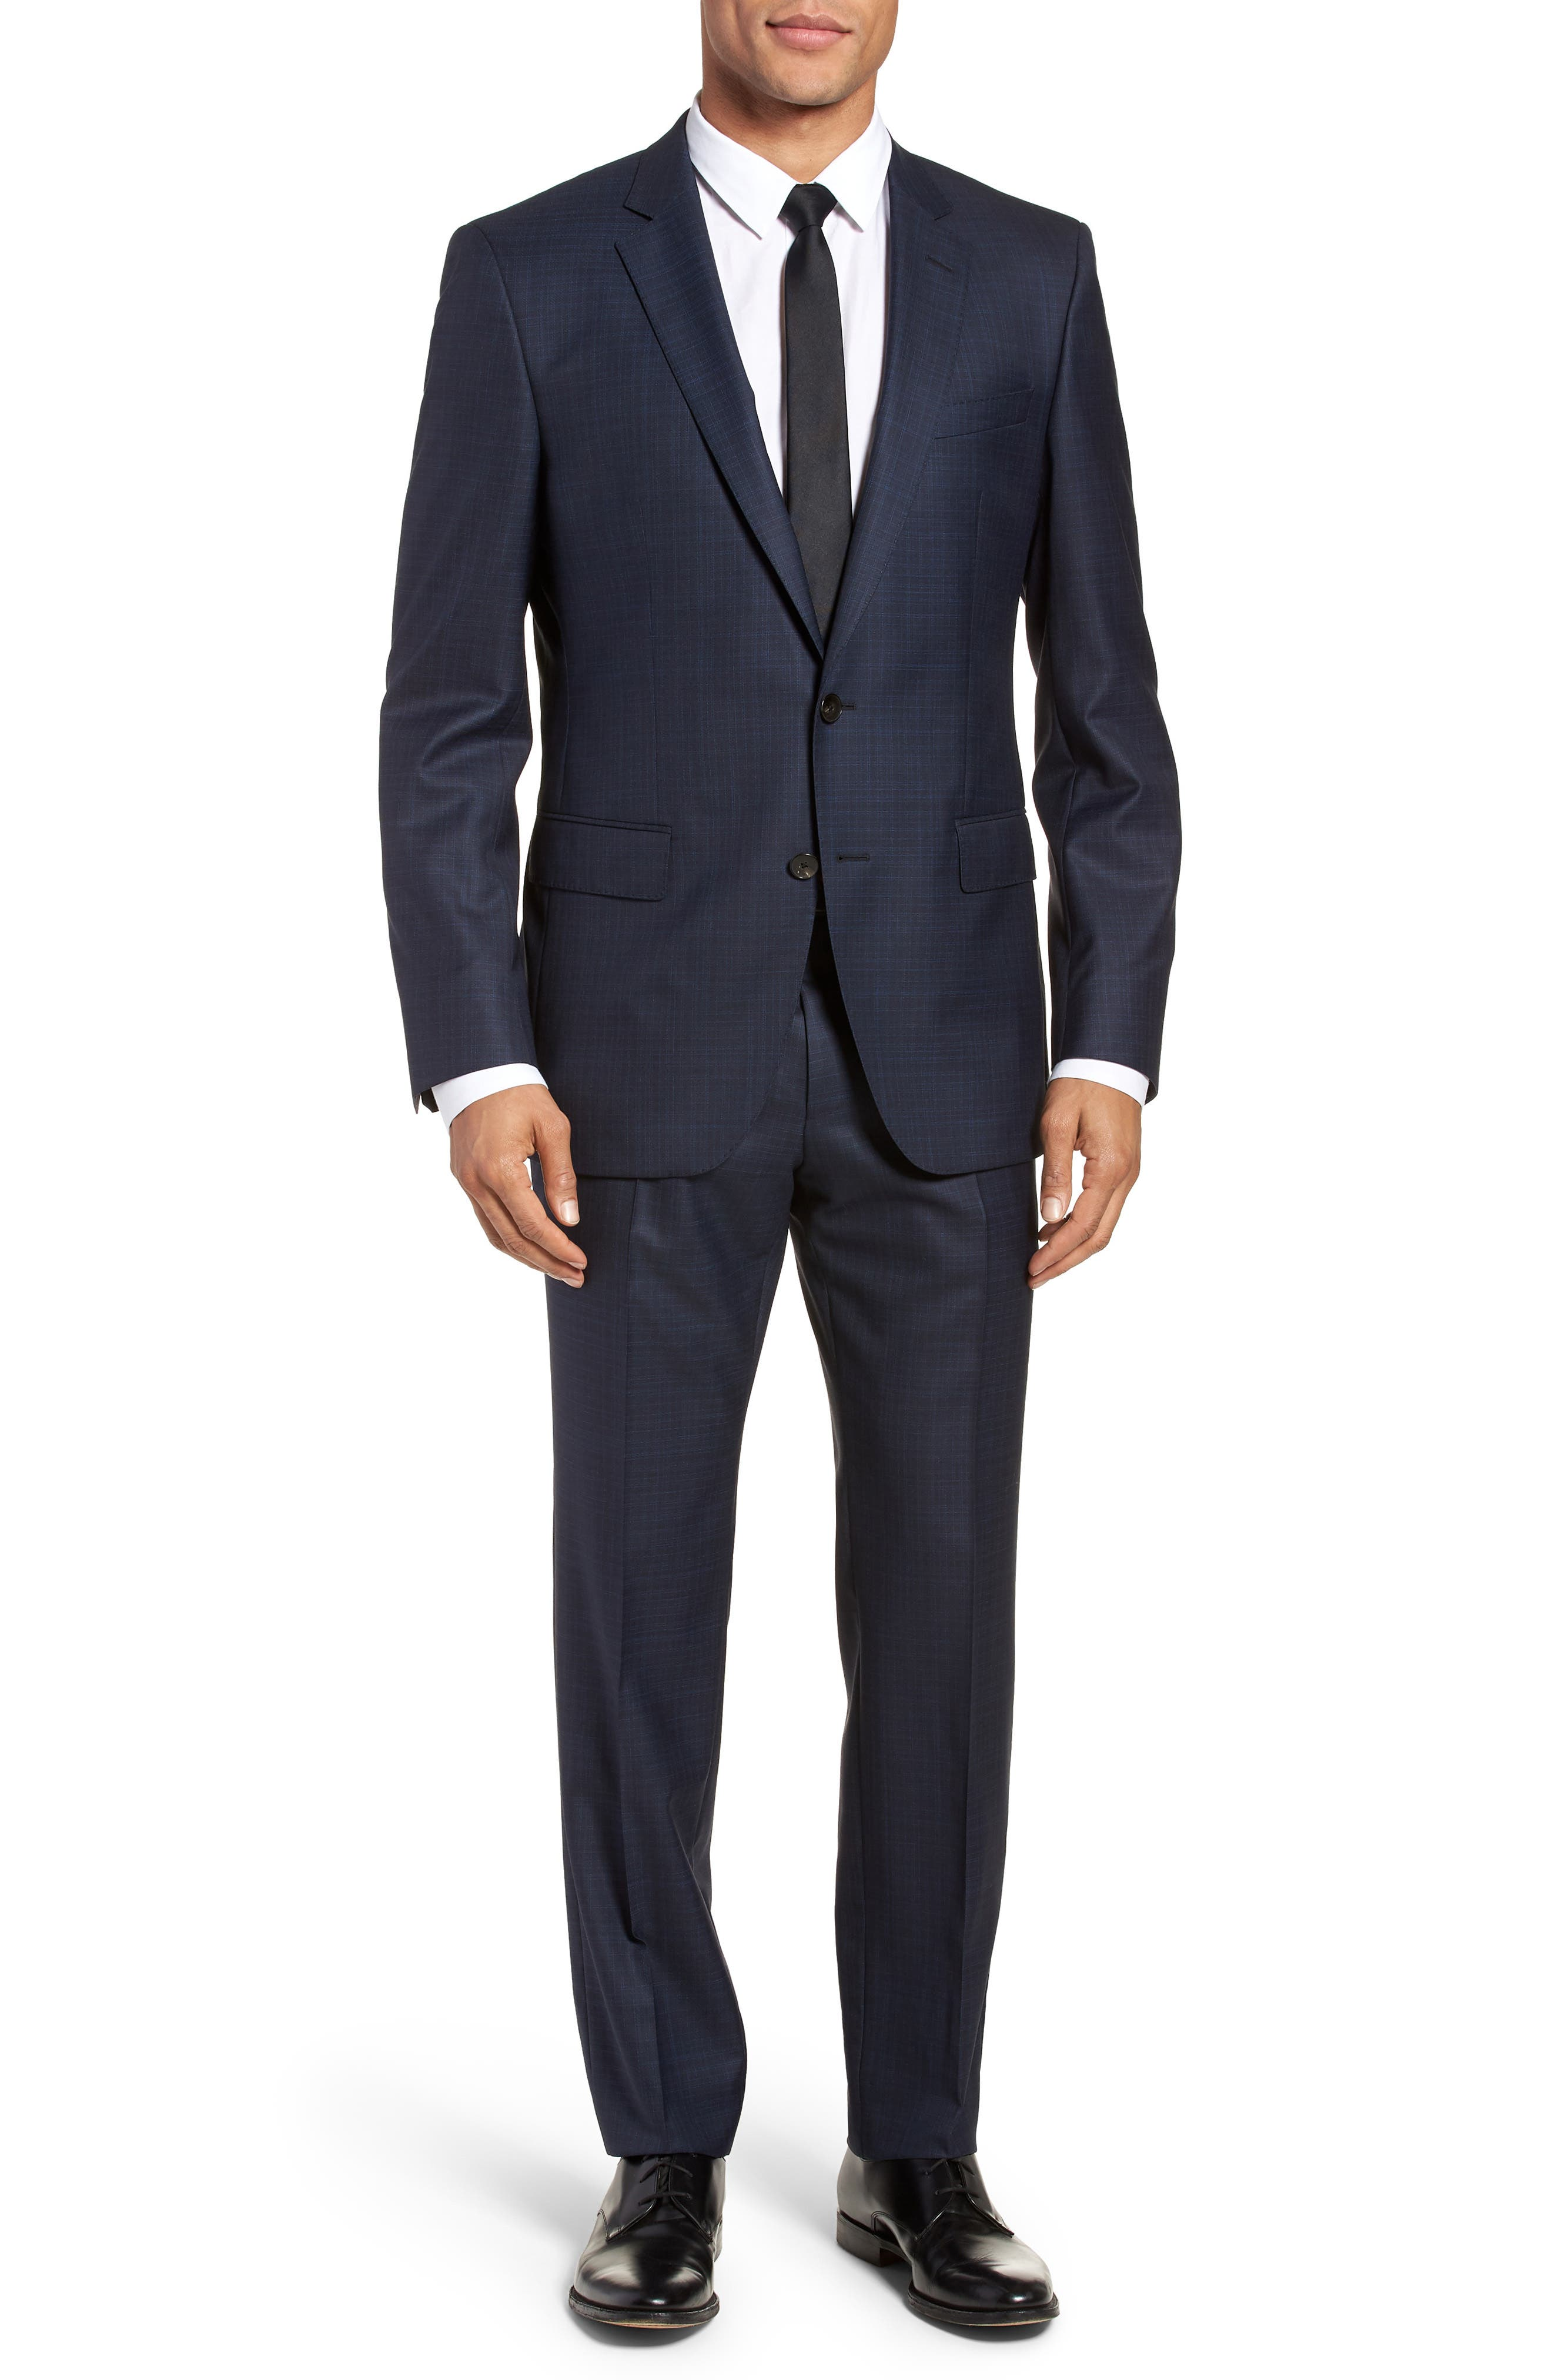 Huge/Genius Trim Fit Plaid Wool Blend Suit,                             Main thumbnail 1, color,                             400